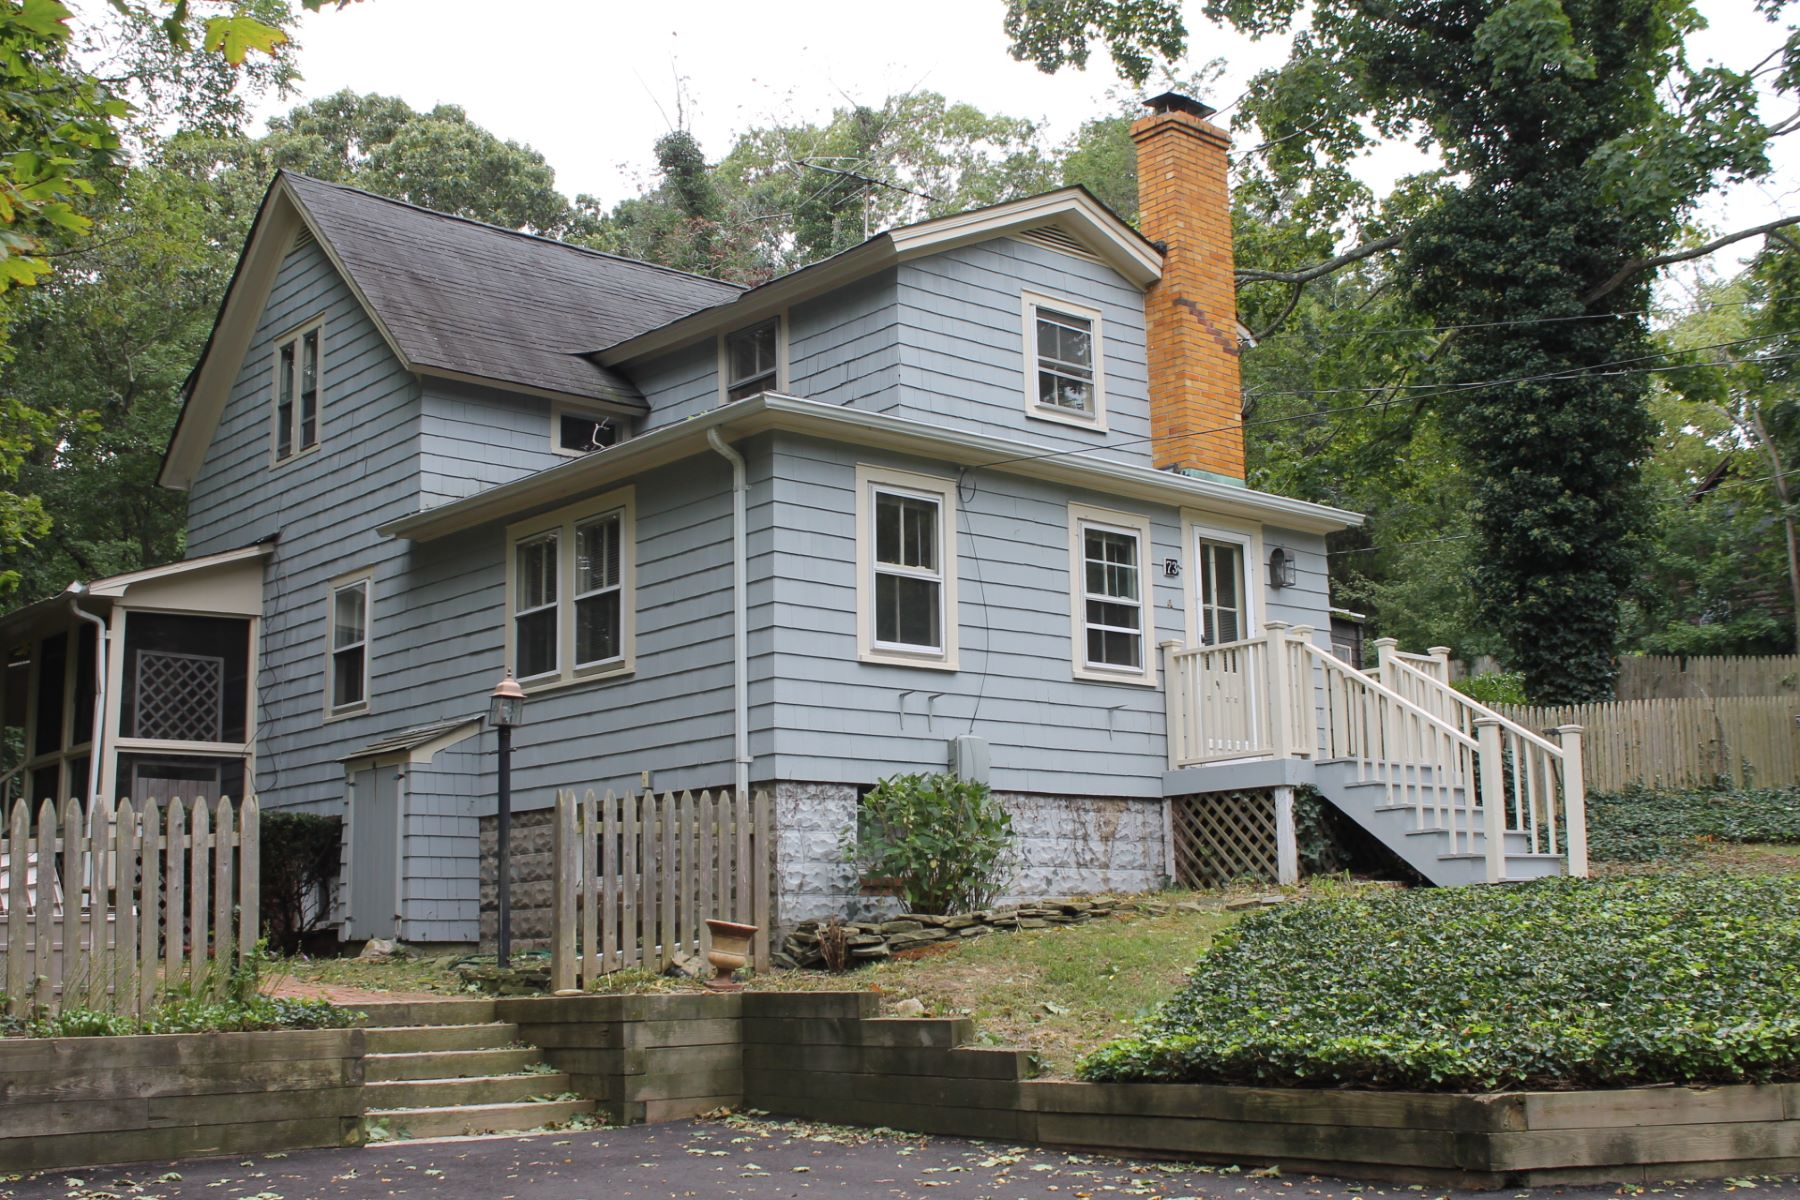 Single Family Home for Sale at 73 Thompson Hay , Setauket, NY 11733 73 Thompson Hay, Setauket, New York, 11733 United States